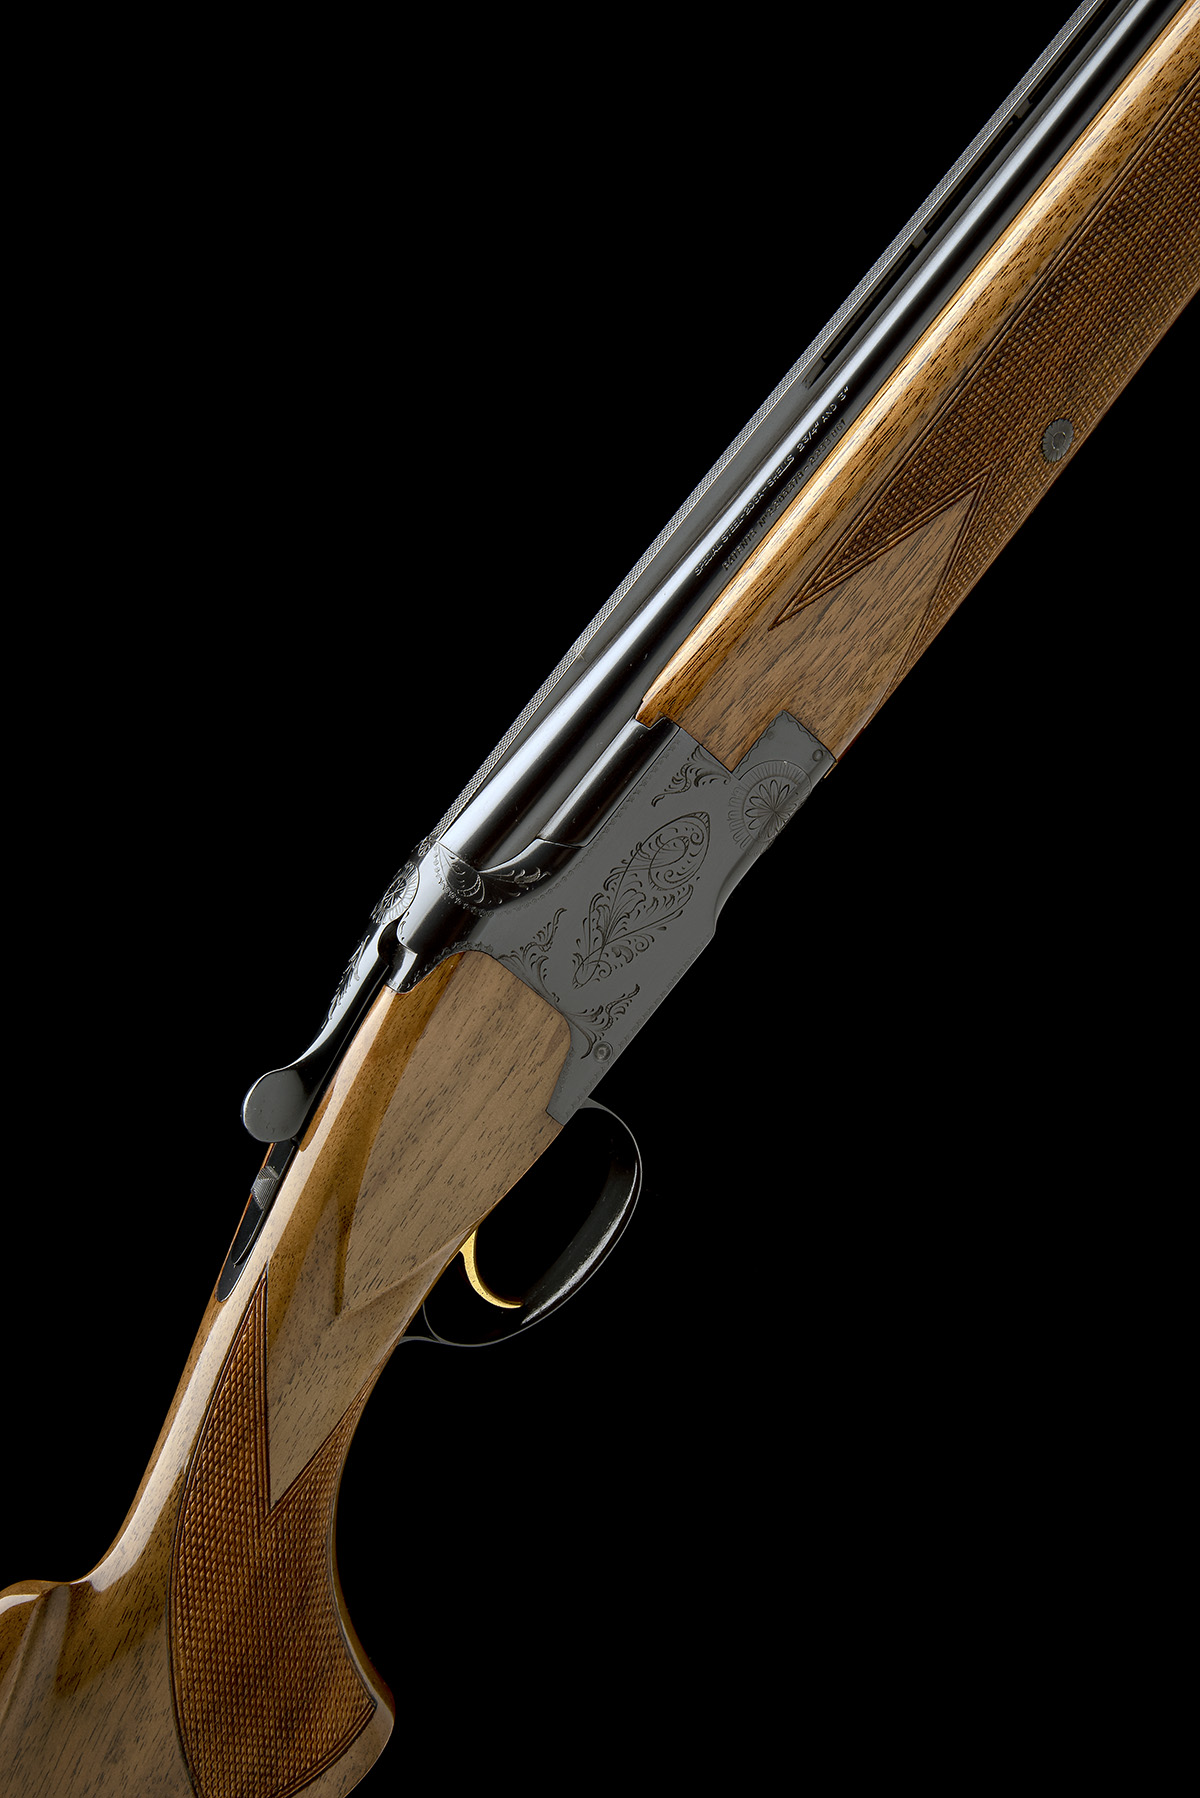 BROWNING ARMS COMPANY A 20-BORE (3IN.) B25 'LIGHTNING' SINGLE-TRIGGER OVER AND UNDER EJECTOR, serial